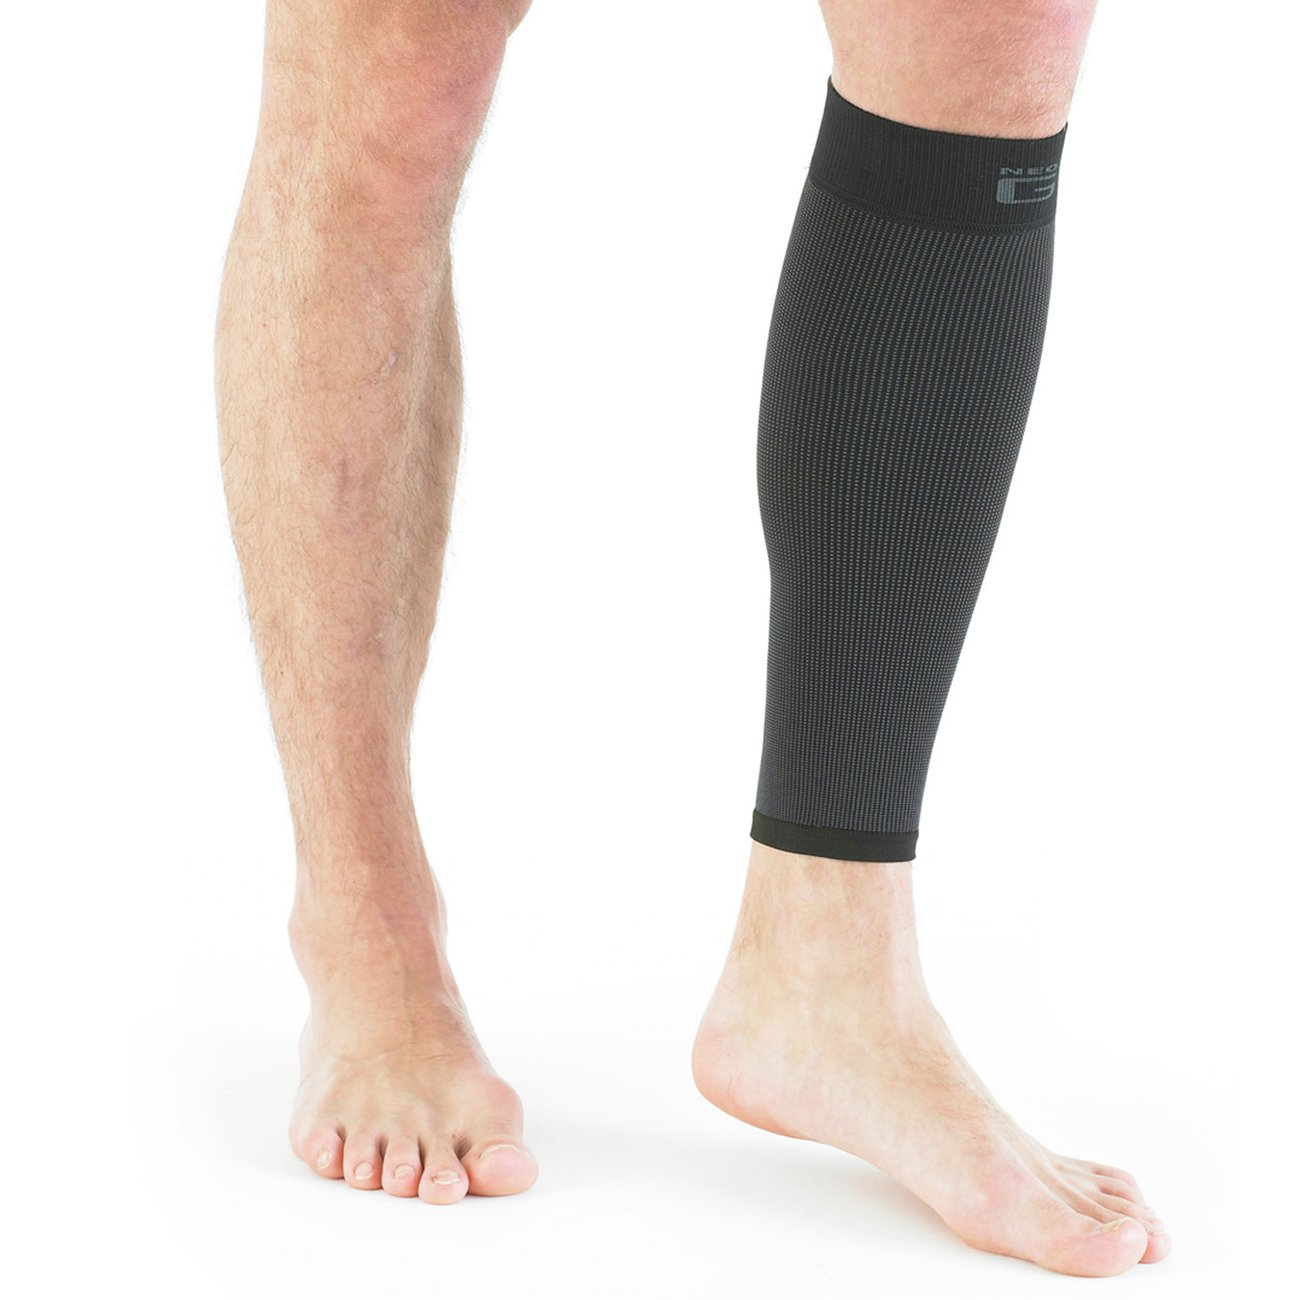 Neo G Airflow Calf Support - Small